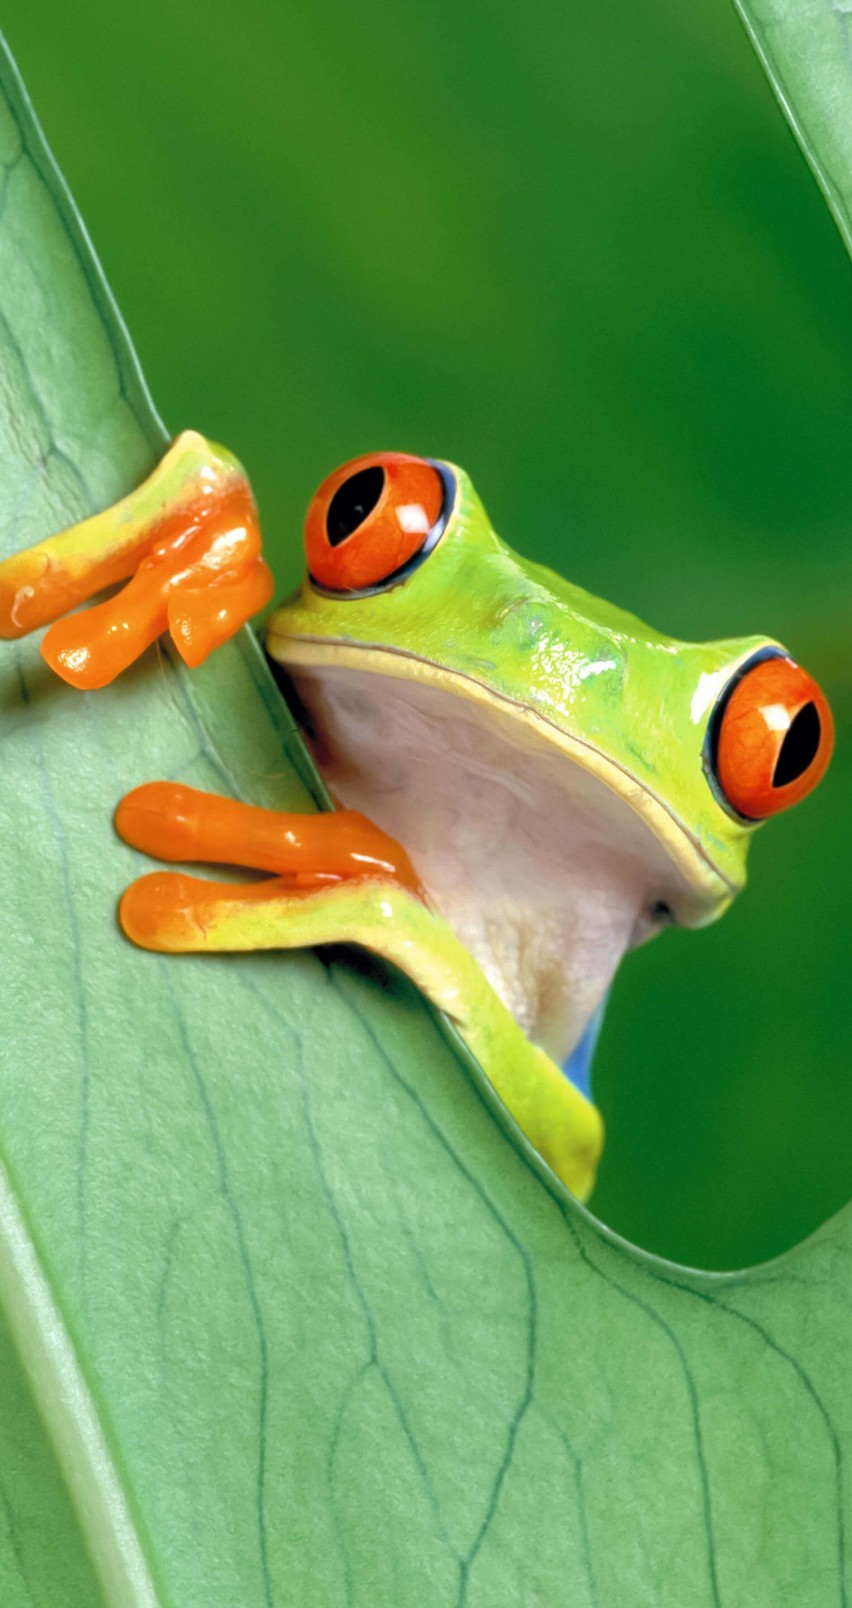 Red Eyed Tree Frog Wallpaper for Apple iPhone 6 / 6s